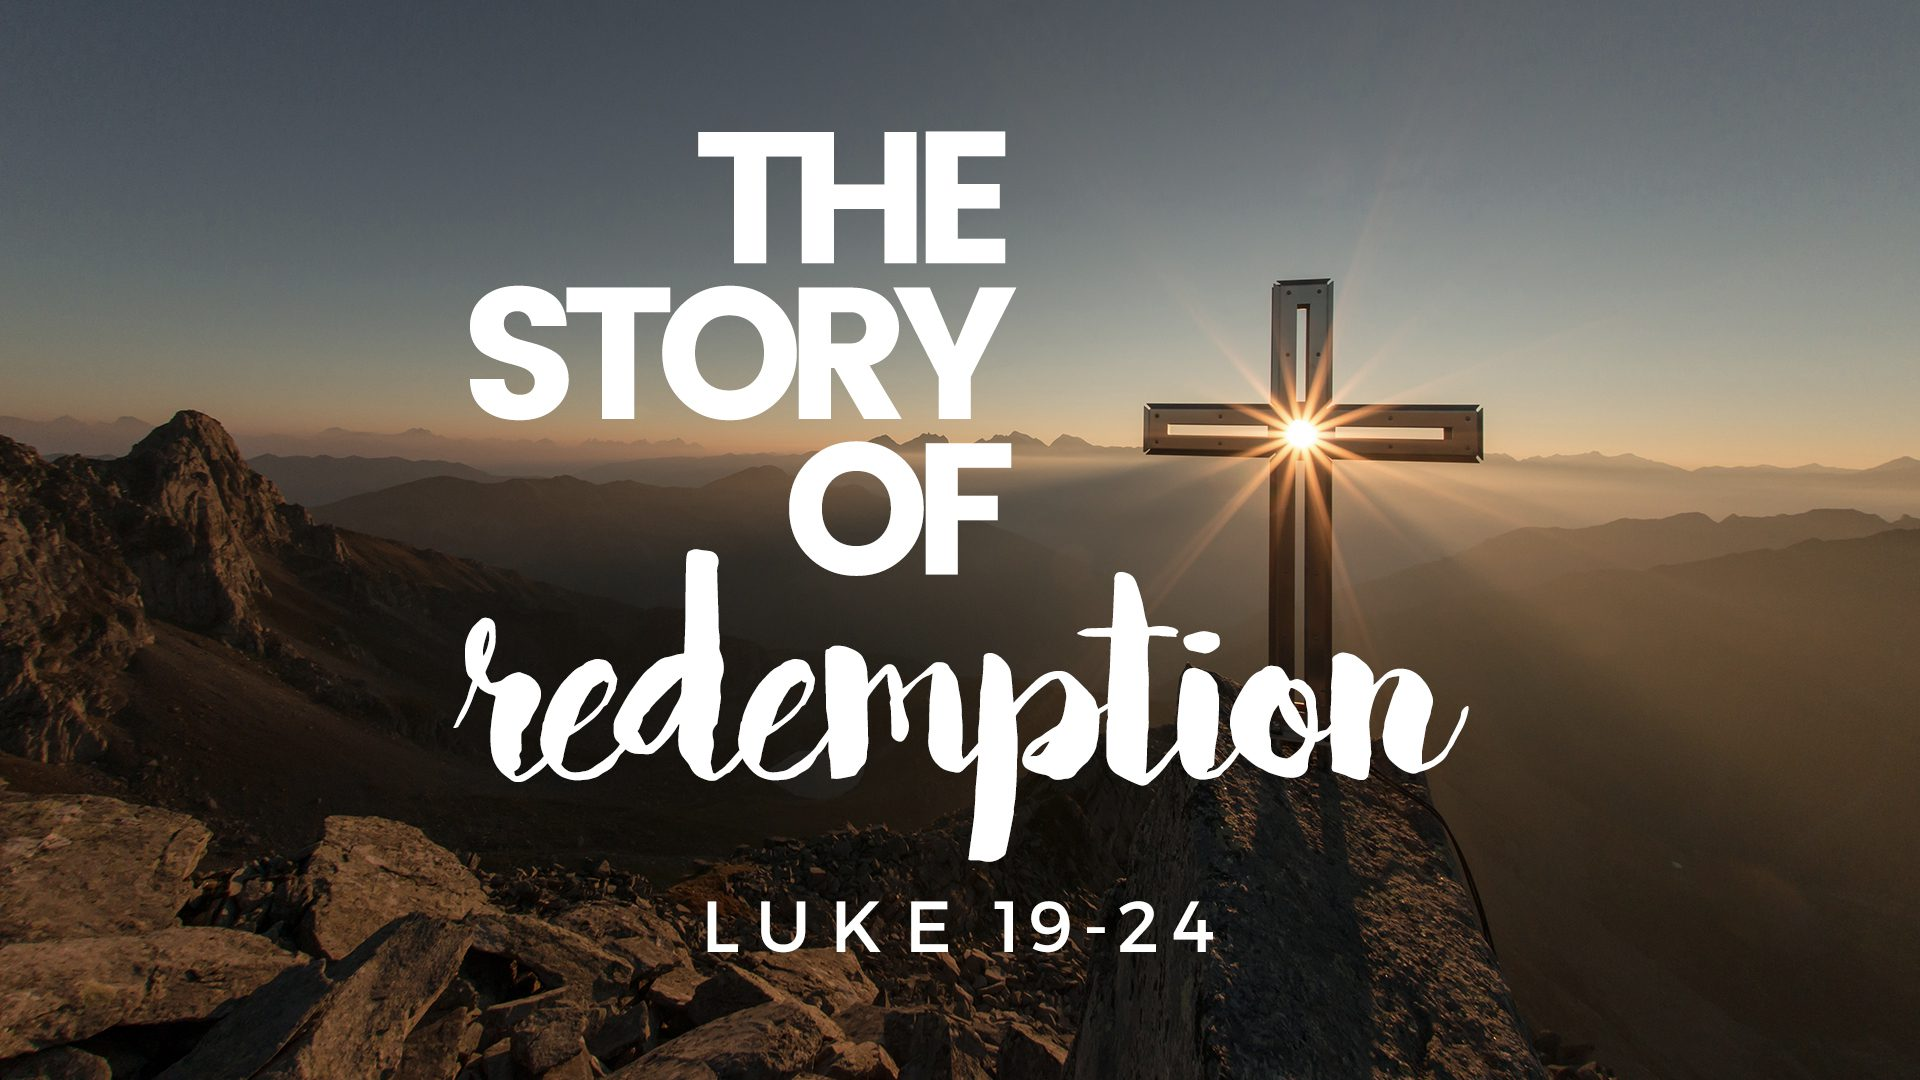 The story of redemption: Luke 19-24